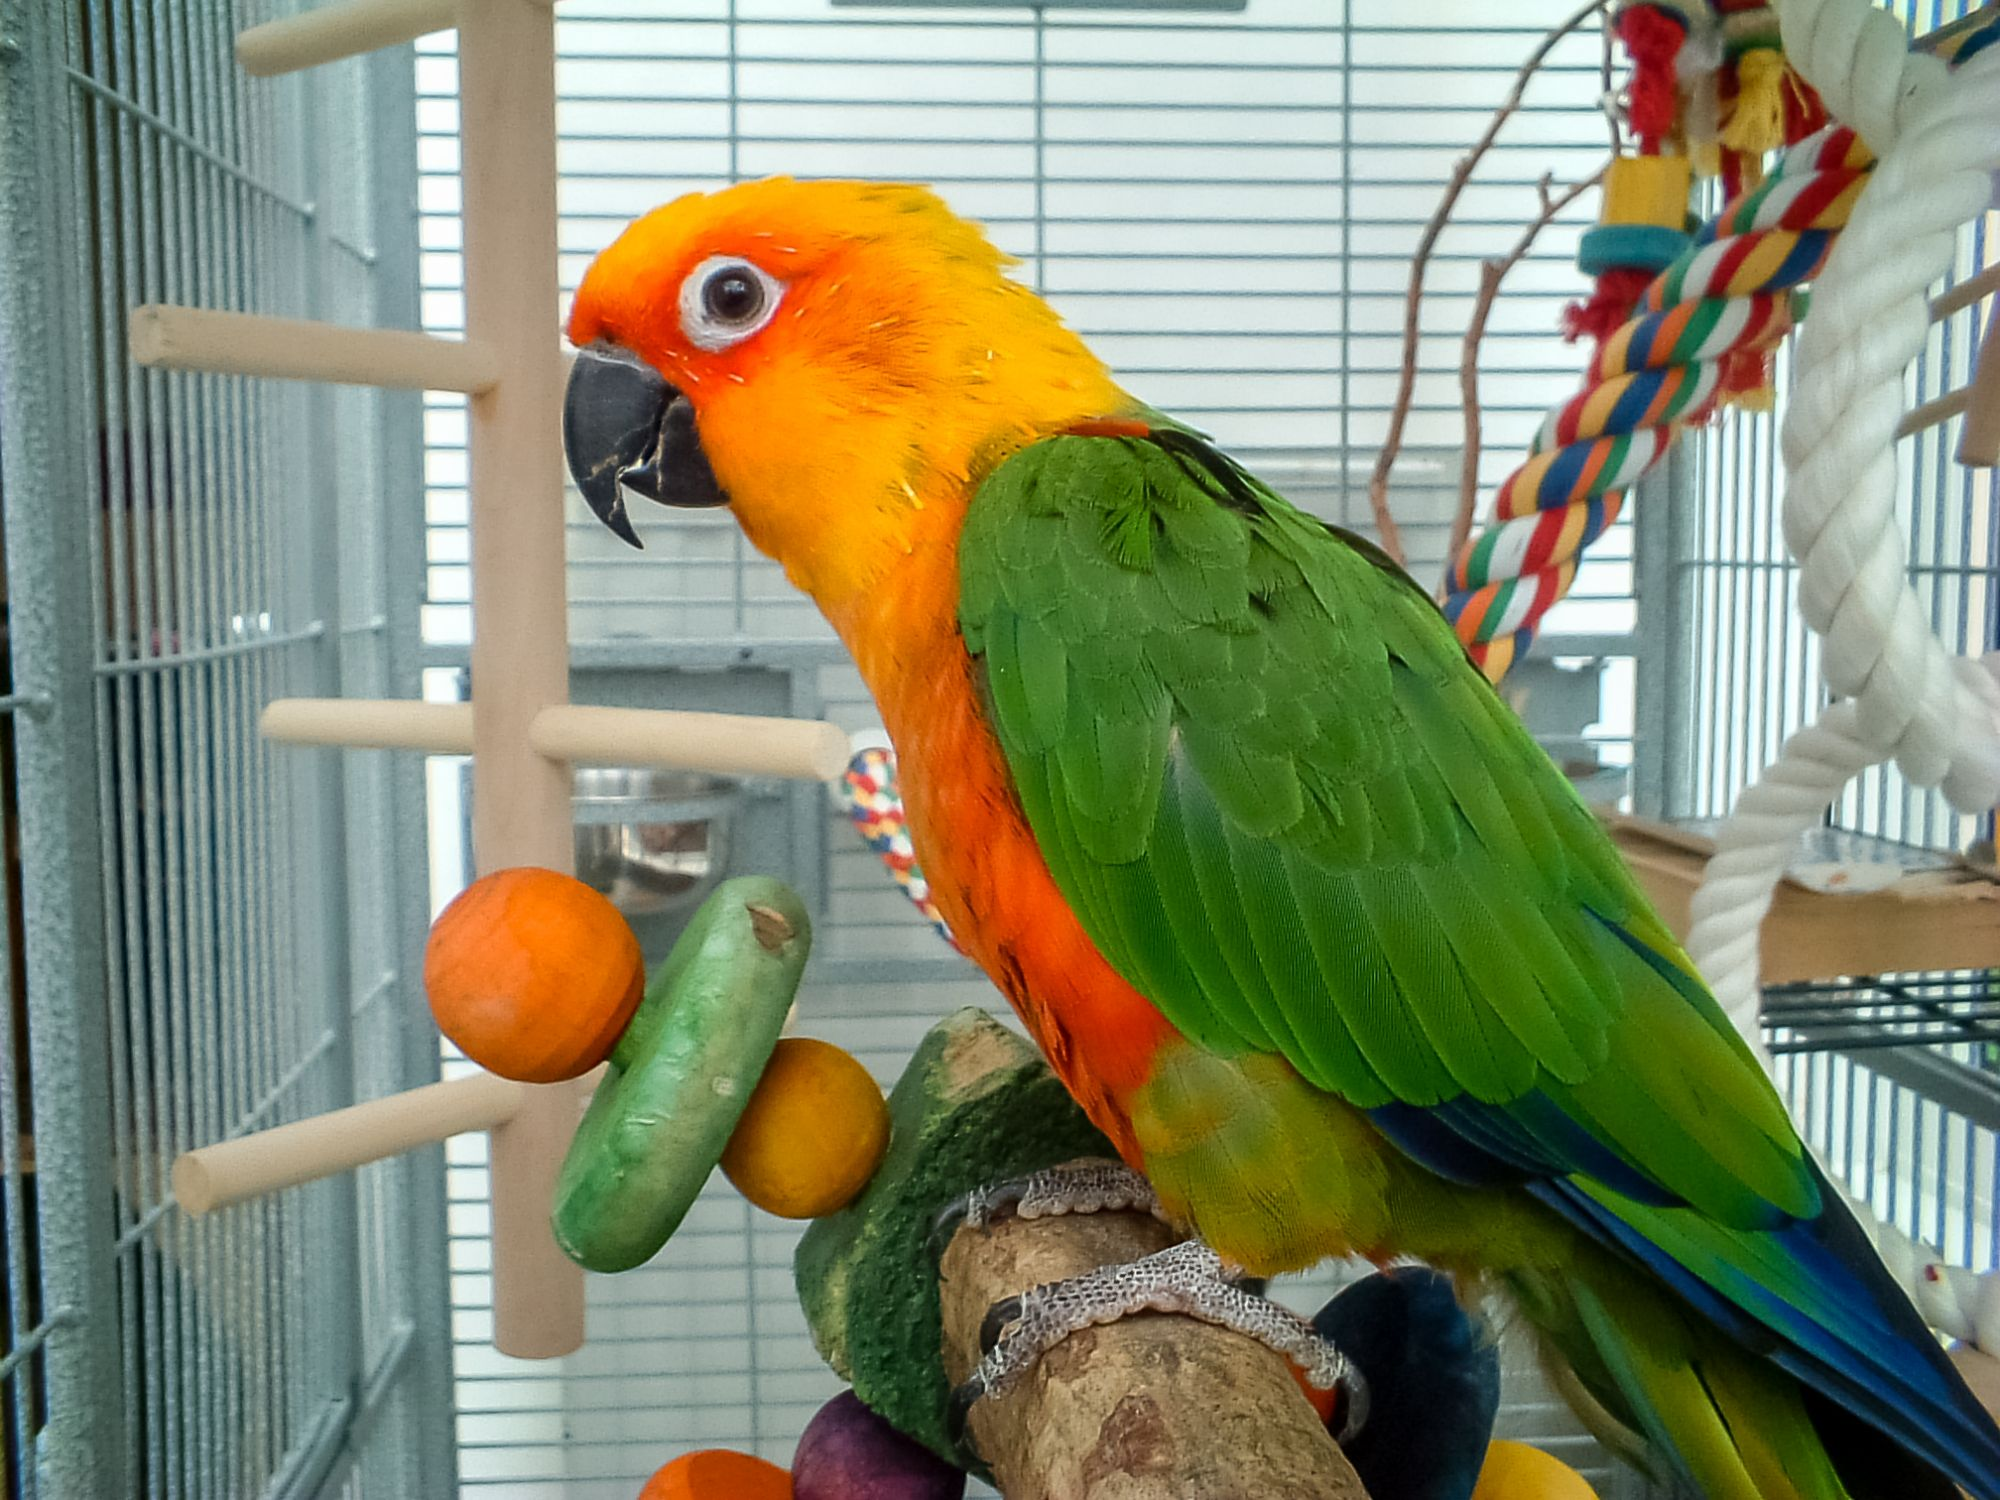 Pet Parrot Becomes the Savior for Owner